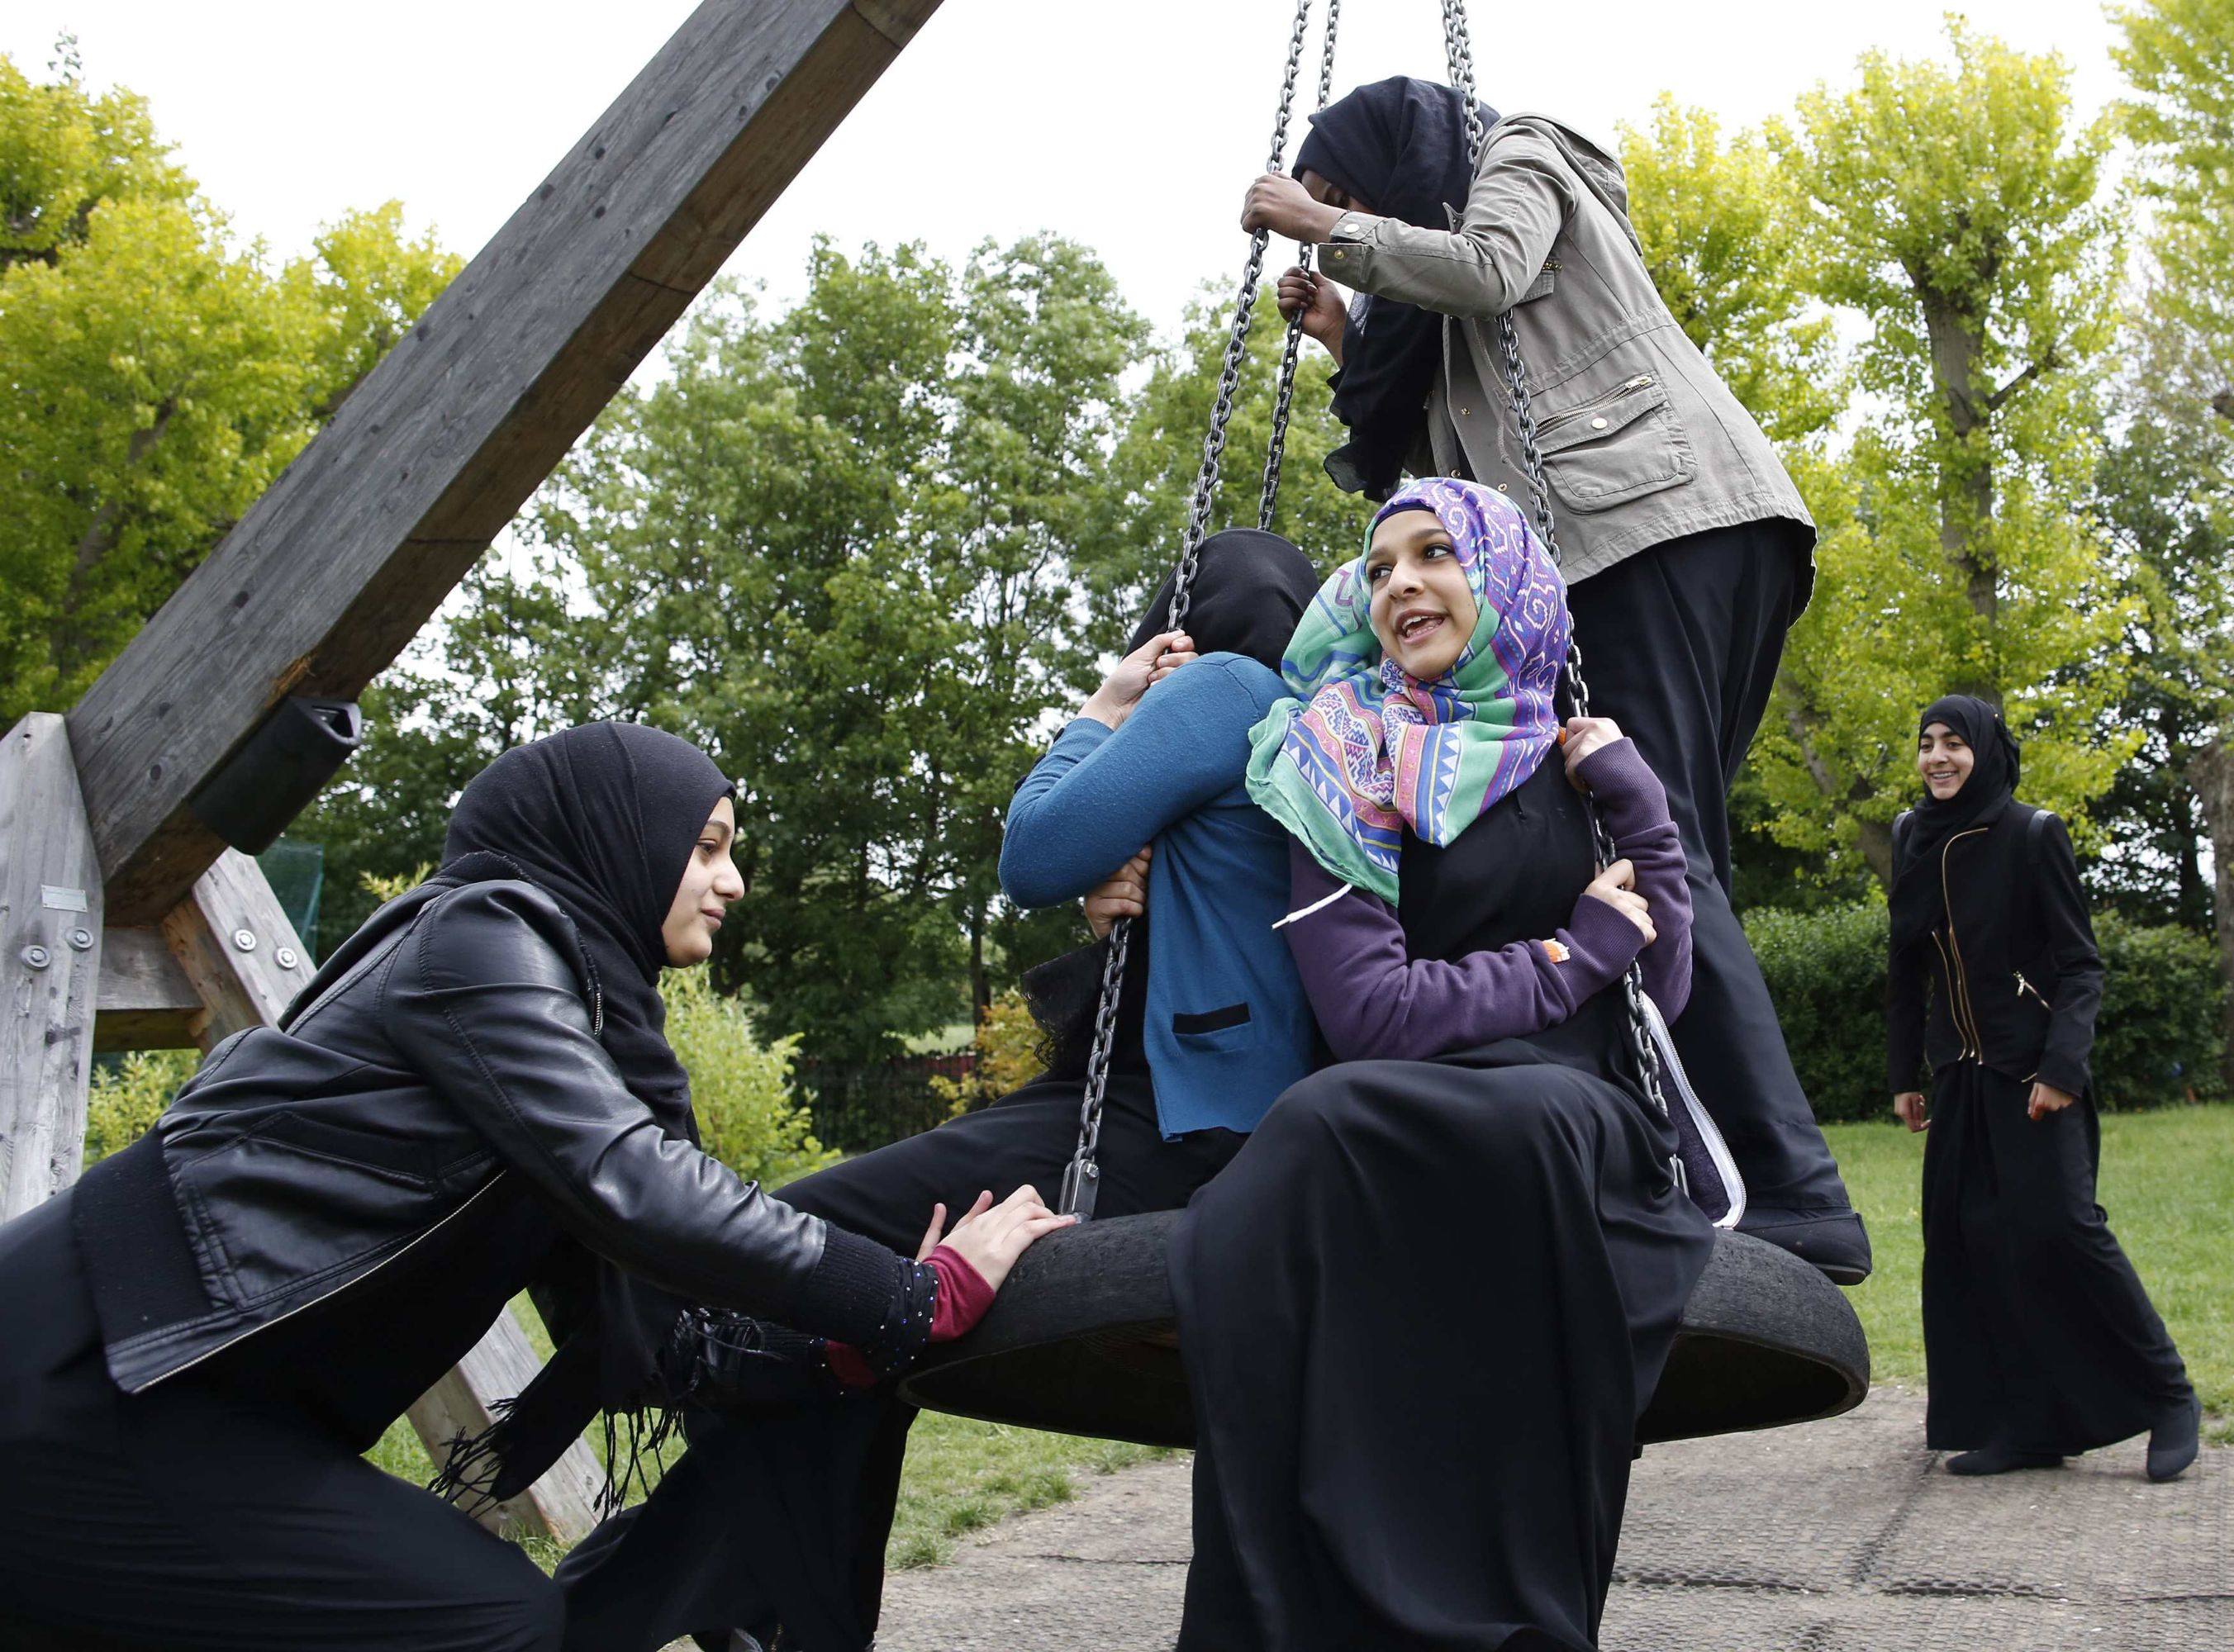 A Muslim girl pushes her friend on a swing after finishing a GCSE exam near their school in Hackney in east London. (Reuters)